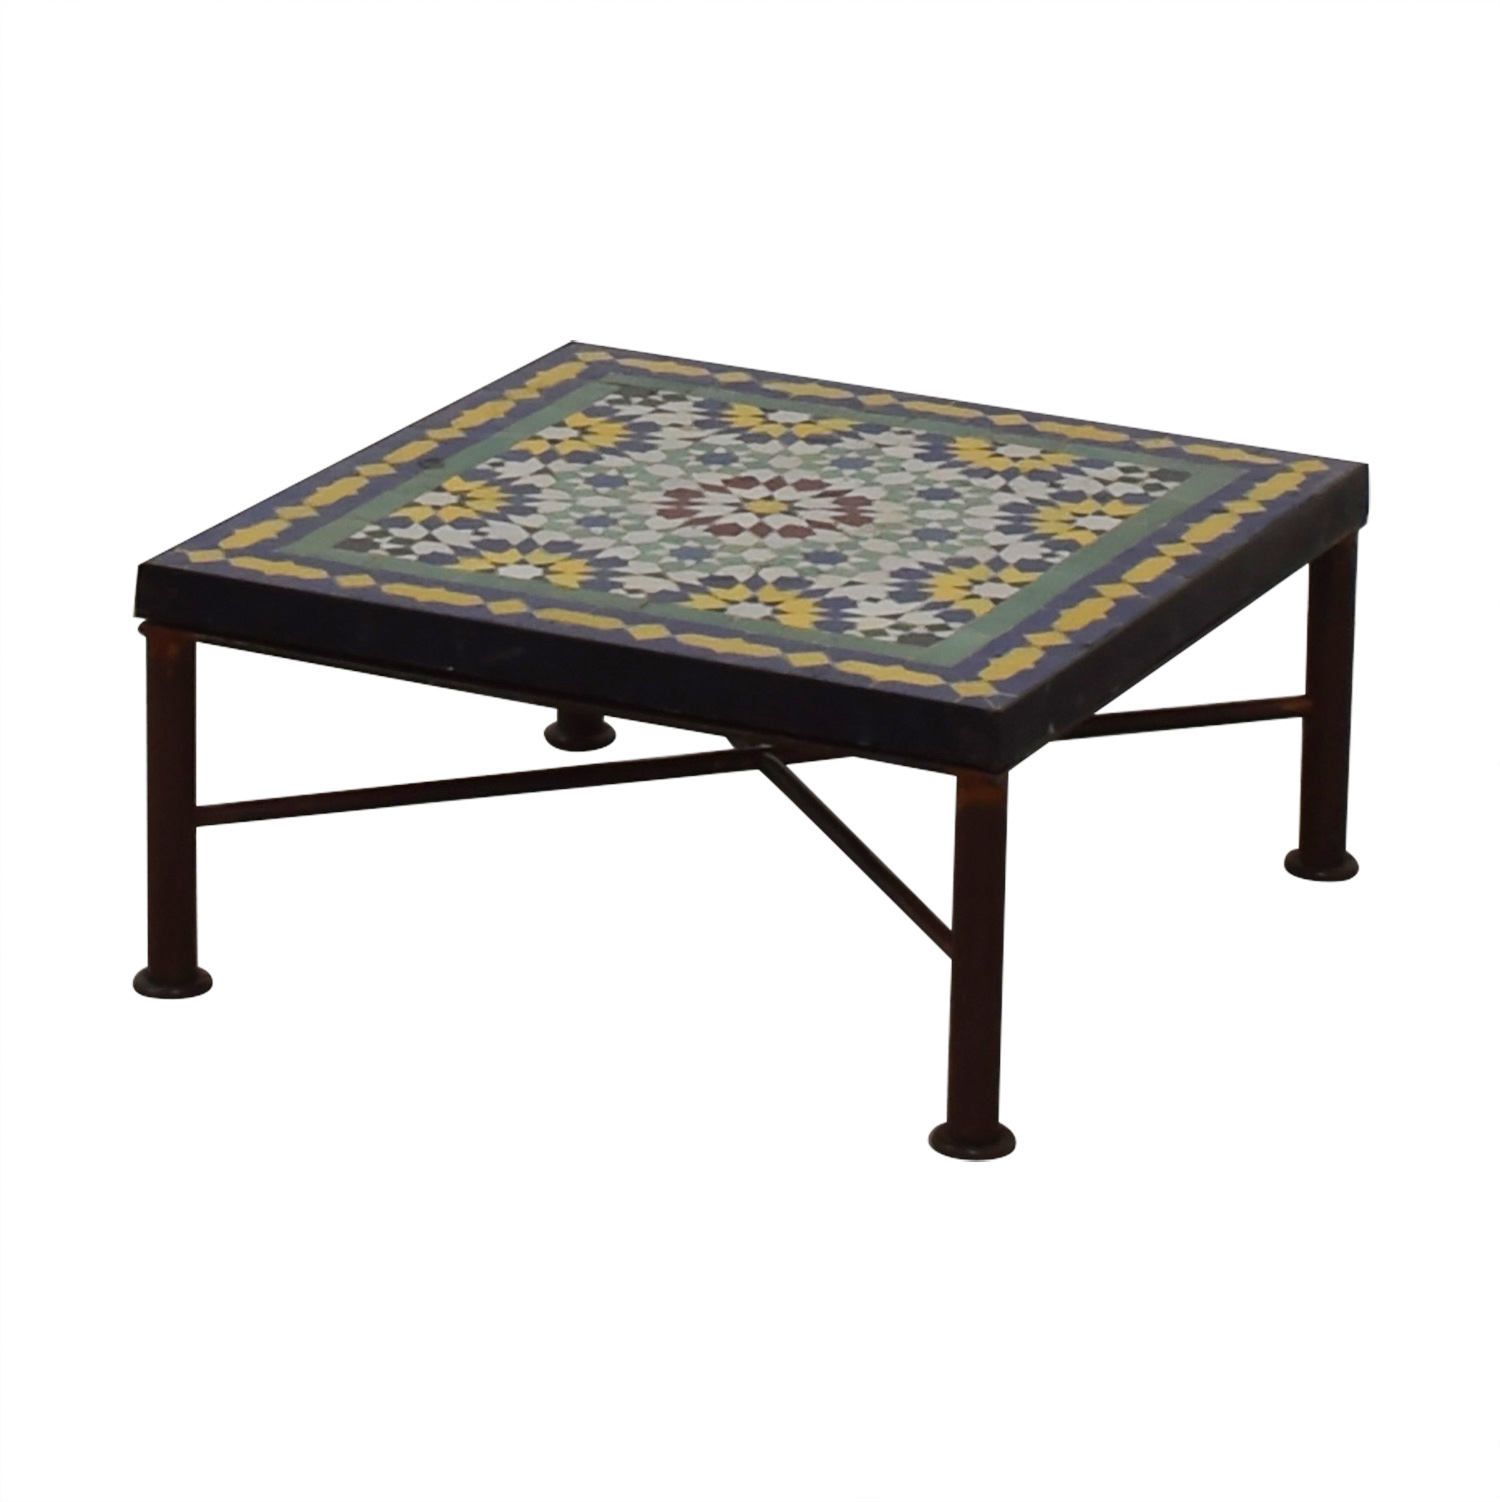 90 off moroccan style tile coffee table tables. Black Bedroom Furniture Sets. Home Design Ideas